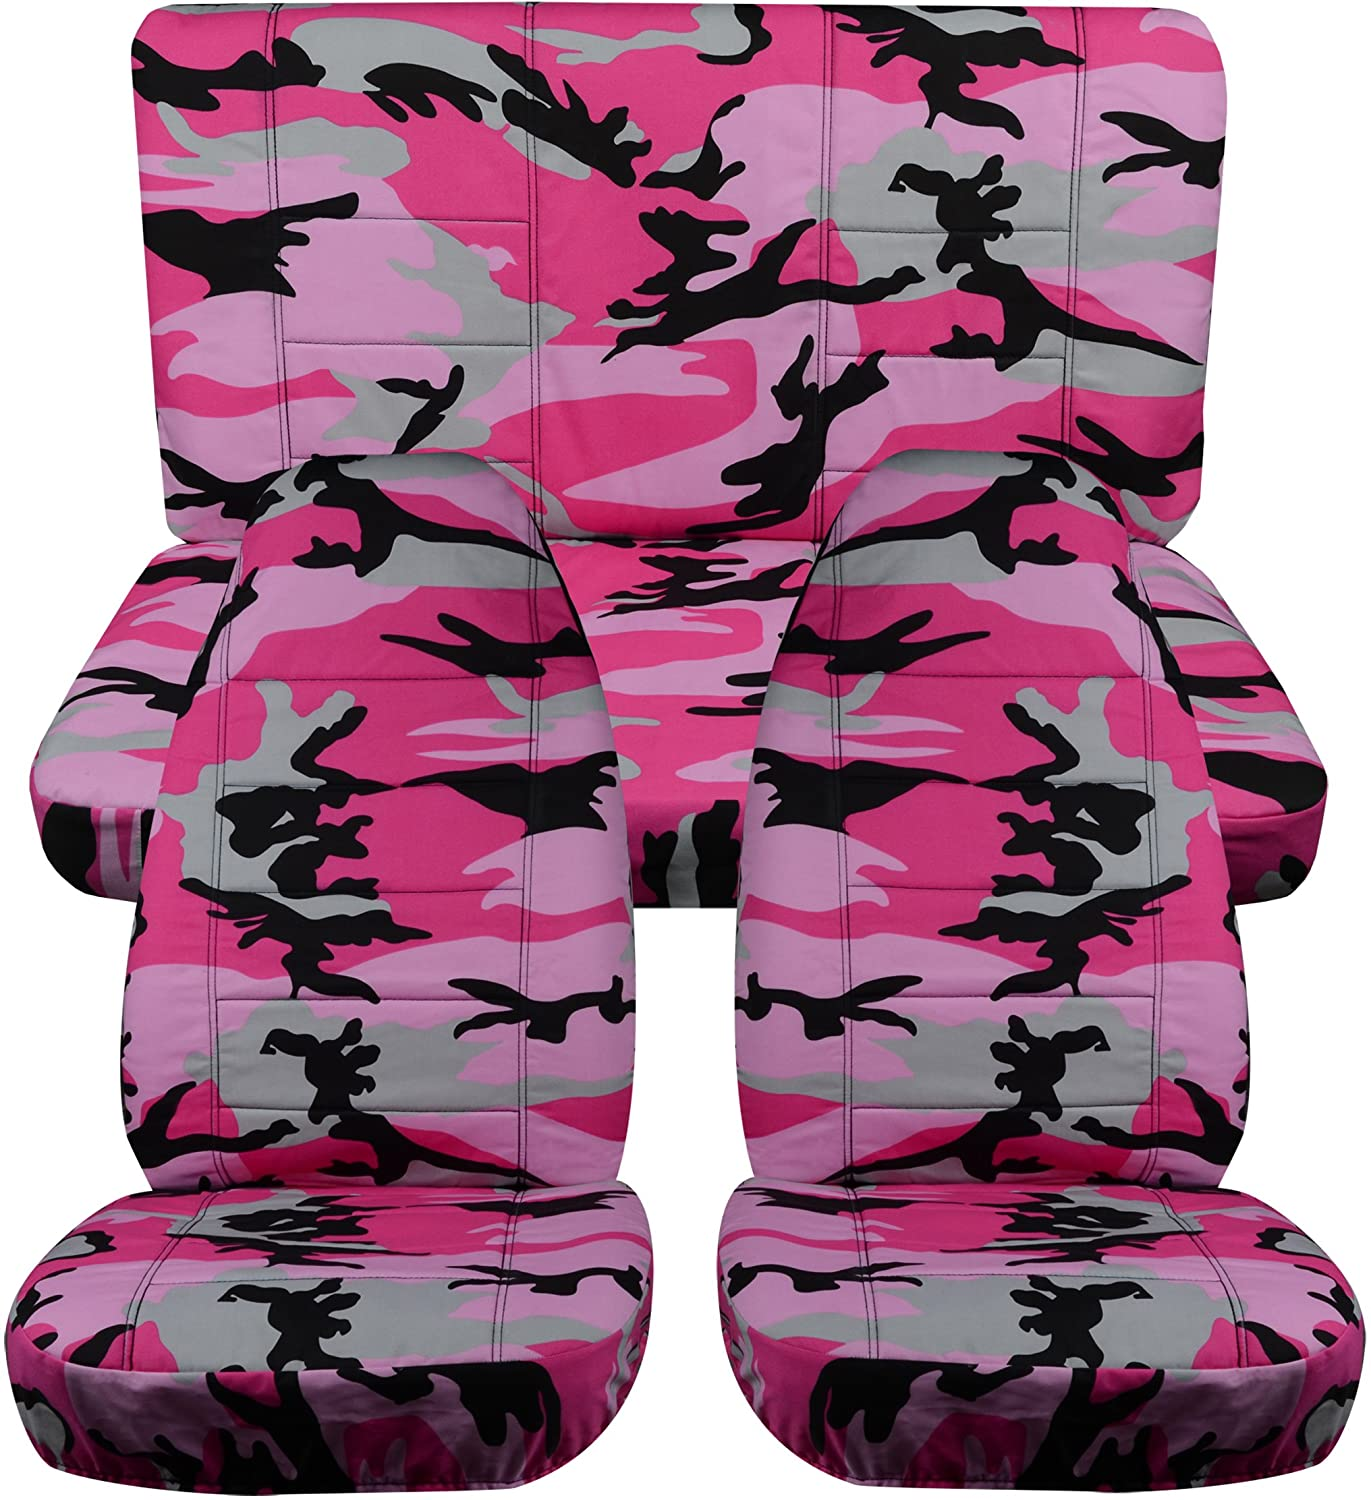 Totally Covers Compatible with 1997-2006 Jeep Wrangler TJ Camo Seat Covers: Pink Camouflage - Full Set: Front & Rear (19 Prints) 2-Door Complete Back Bench